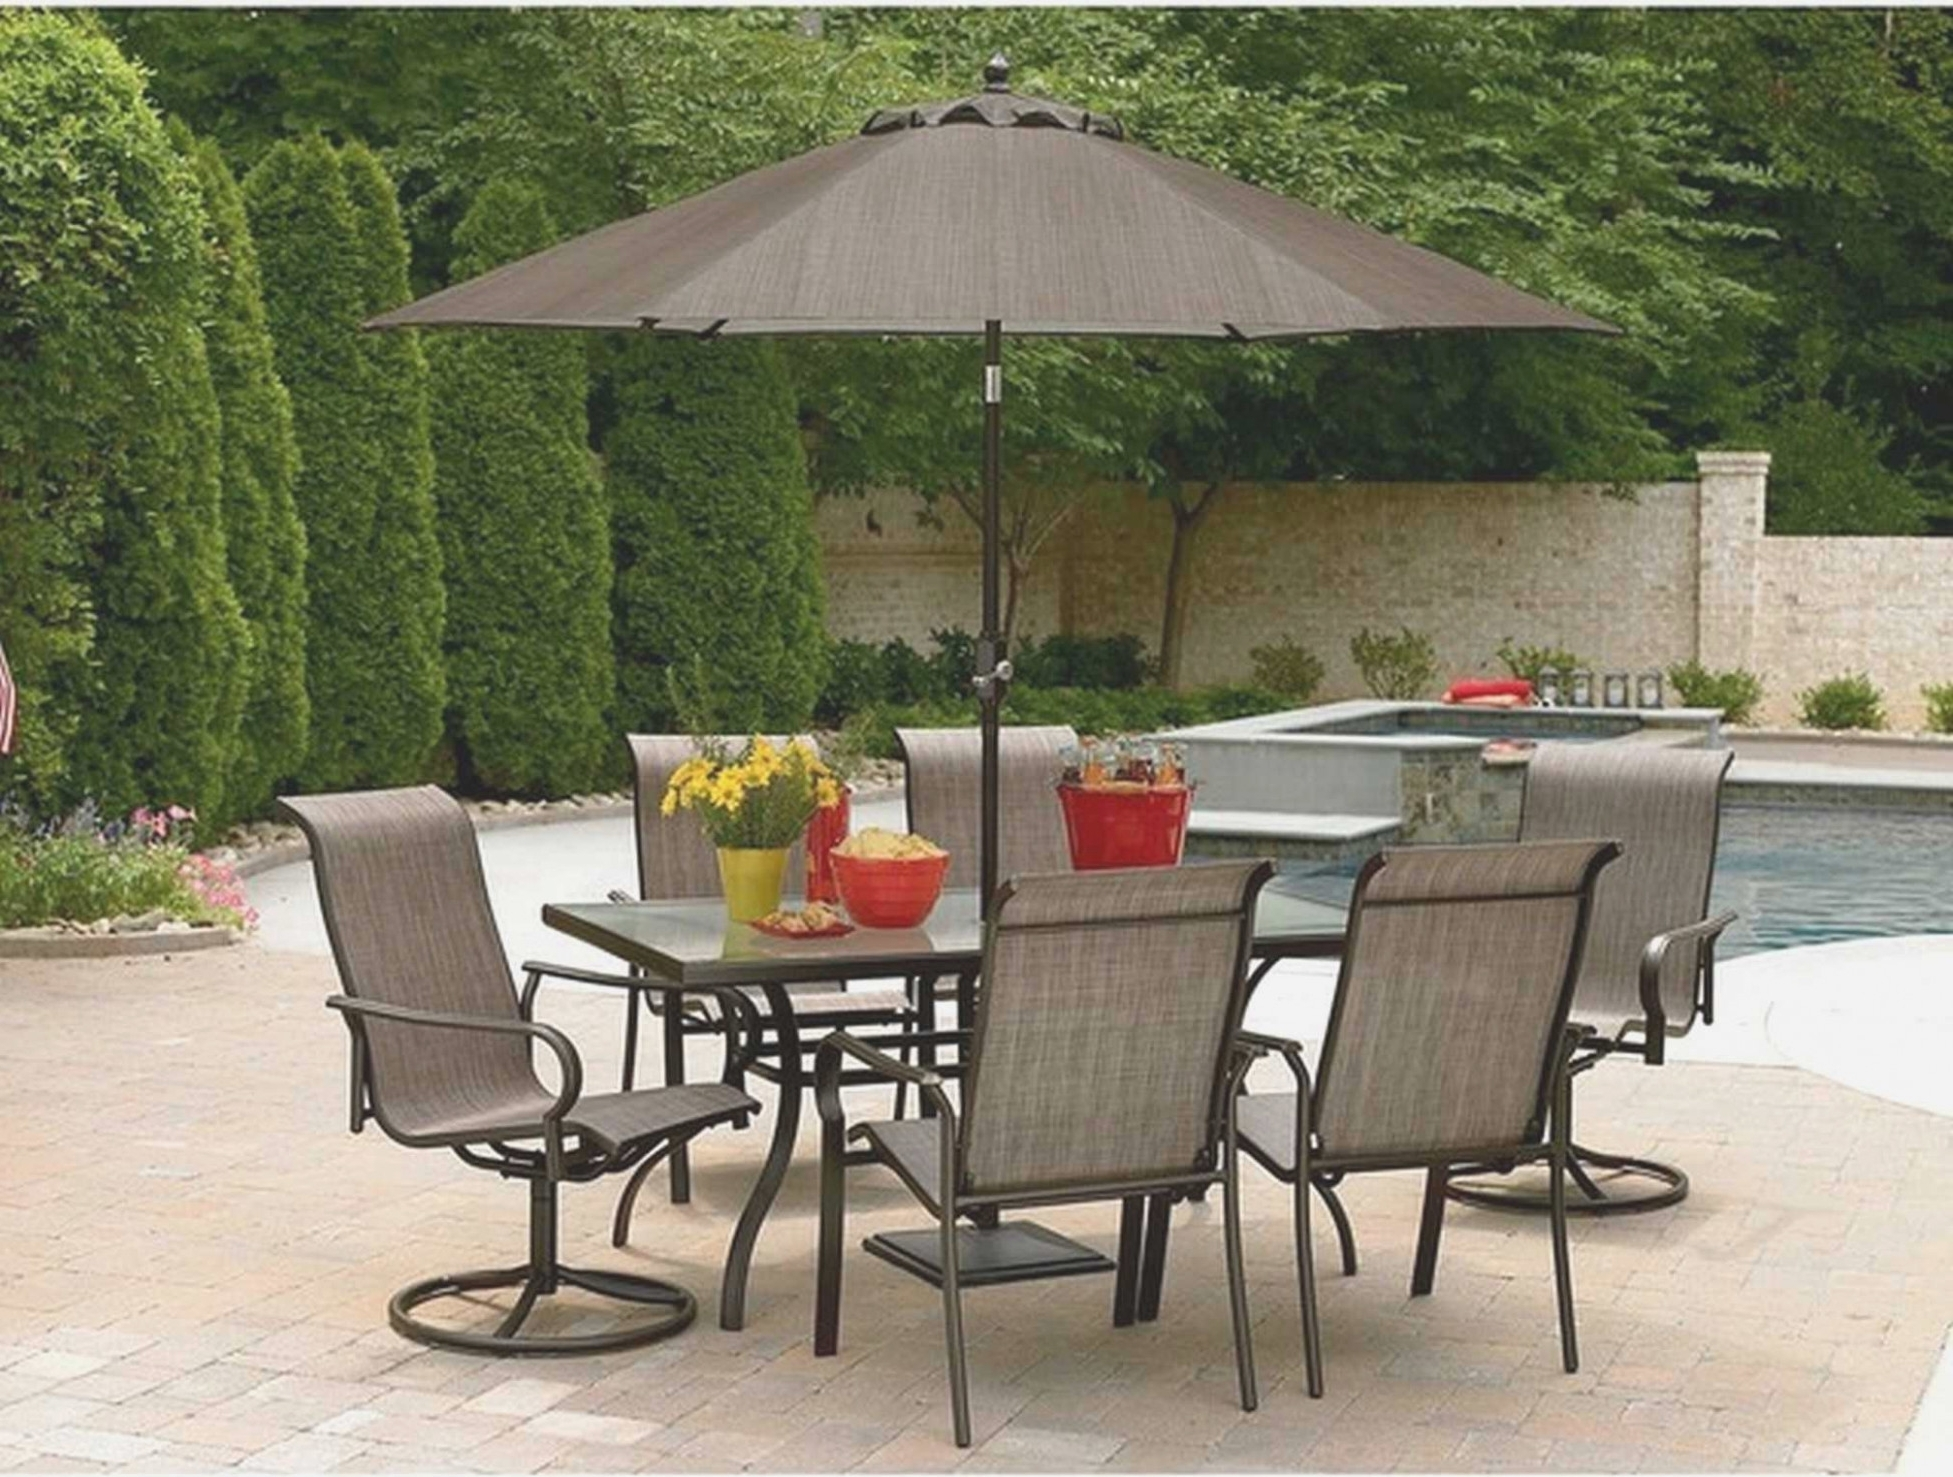 Most Recent Sears Patio Umbrella Inspirational Patio Sears Patio Umbrellas Brown With Patio Umbrellas With Table (View 6 of 20)